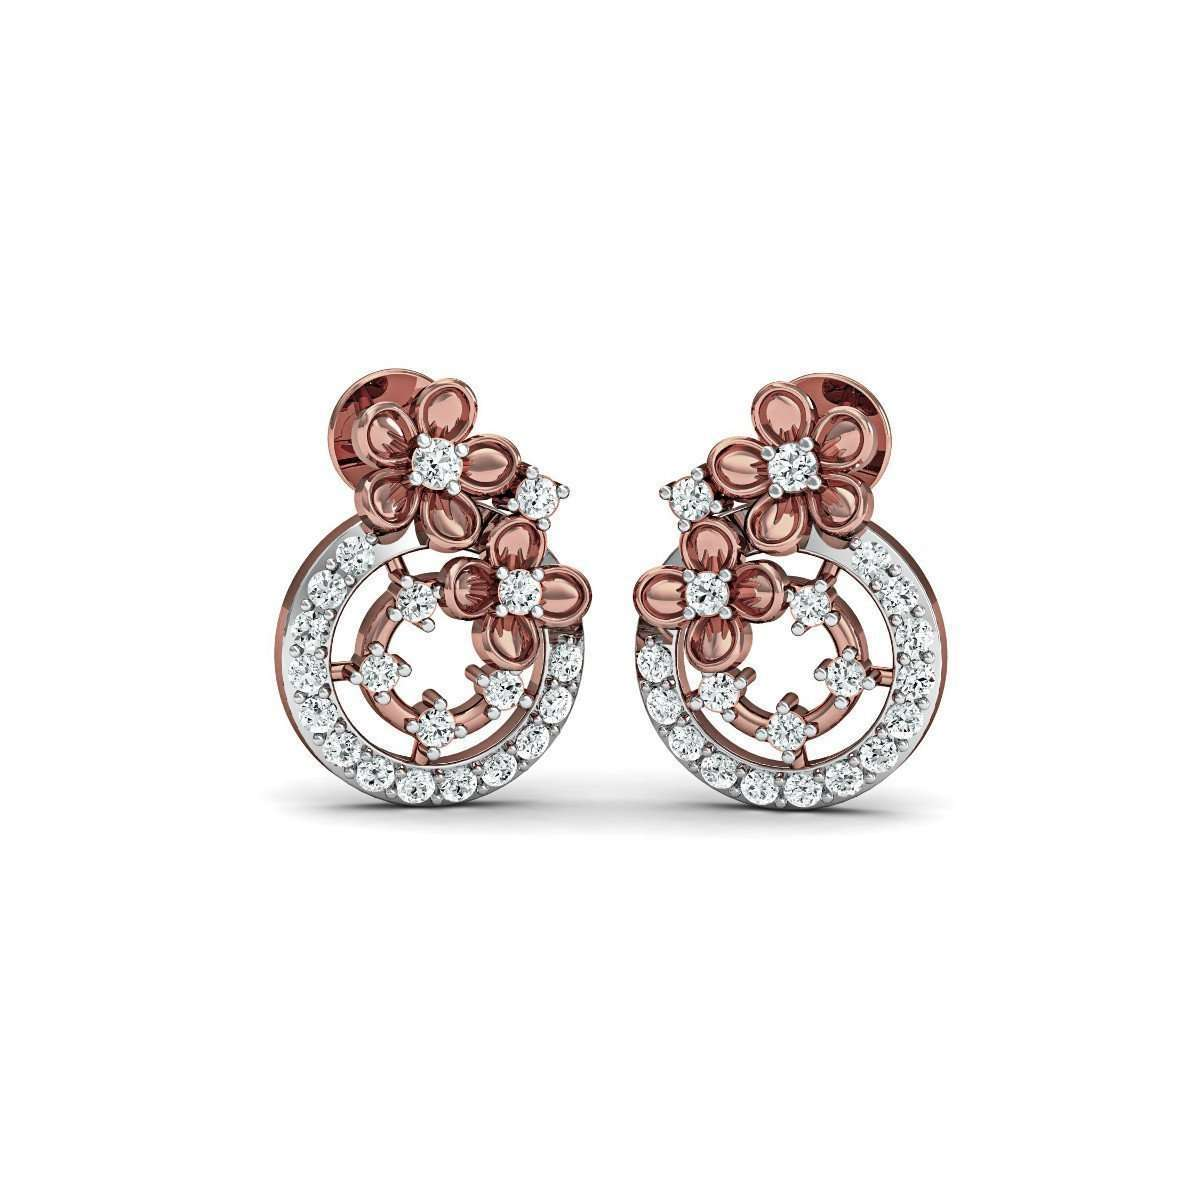 Diamoire Jewels Classic Pave Stud Earrings in 18kt Rose Gold YLrsSfDjd